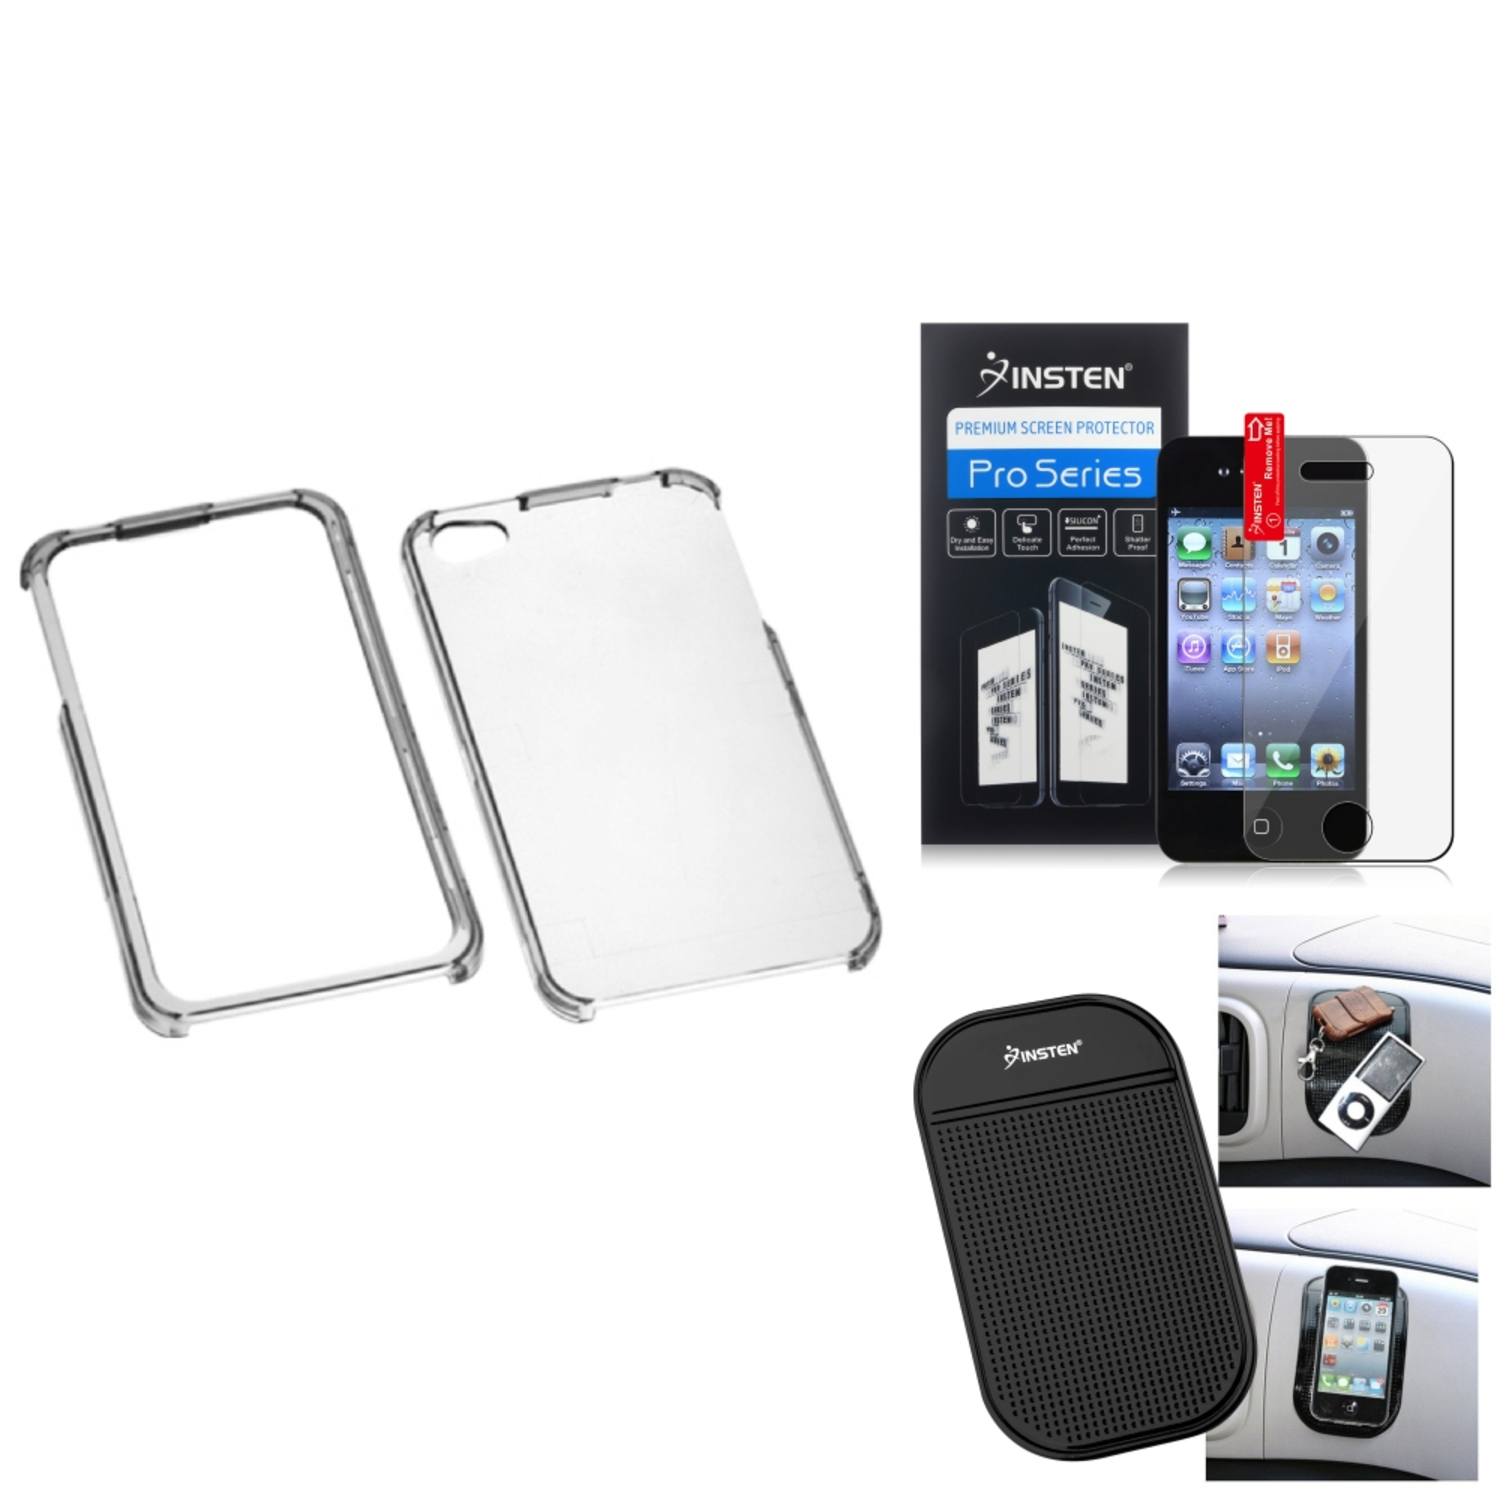 Insten Film+Mat+T-Clear Phone Protector Case Cover For Apple iPhone 4G 4S